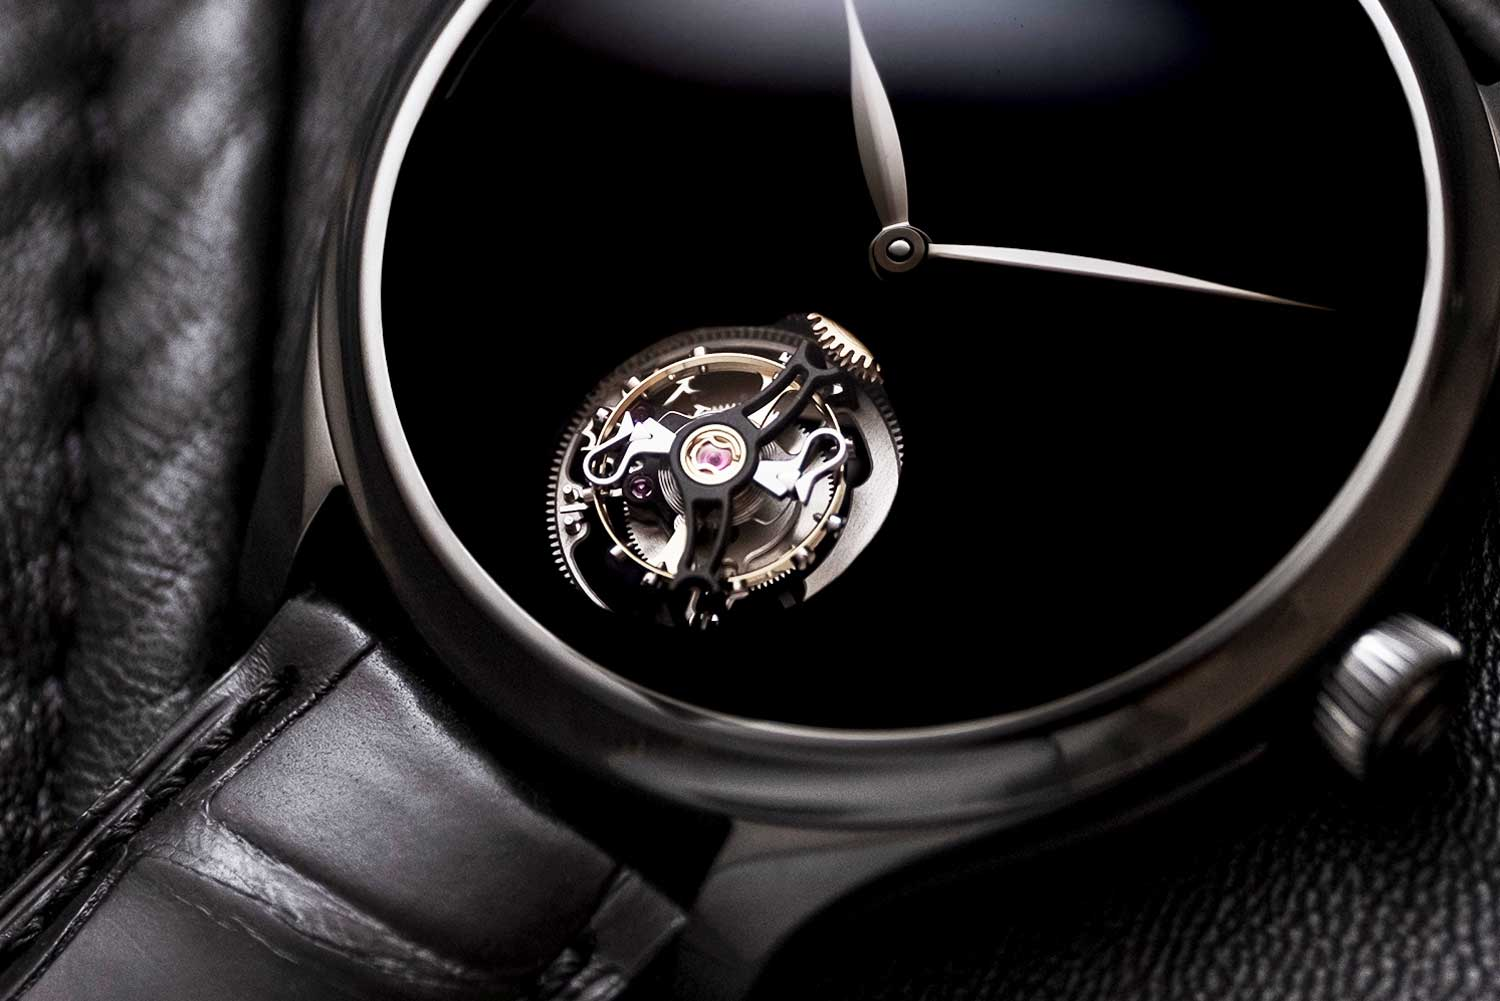 The tourbillon's polished components stand out against the Vantablack dial and PVD-coated bridges.